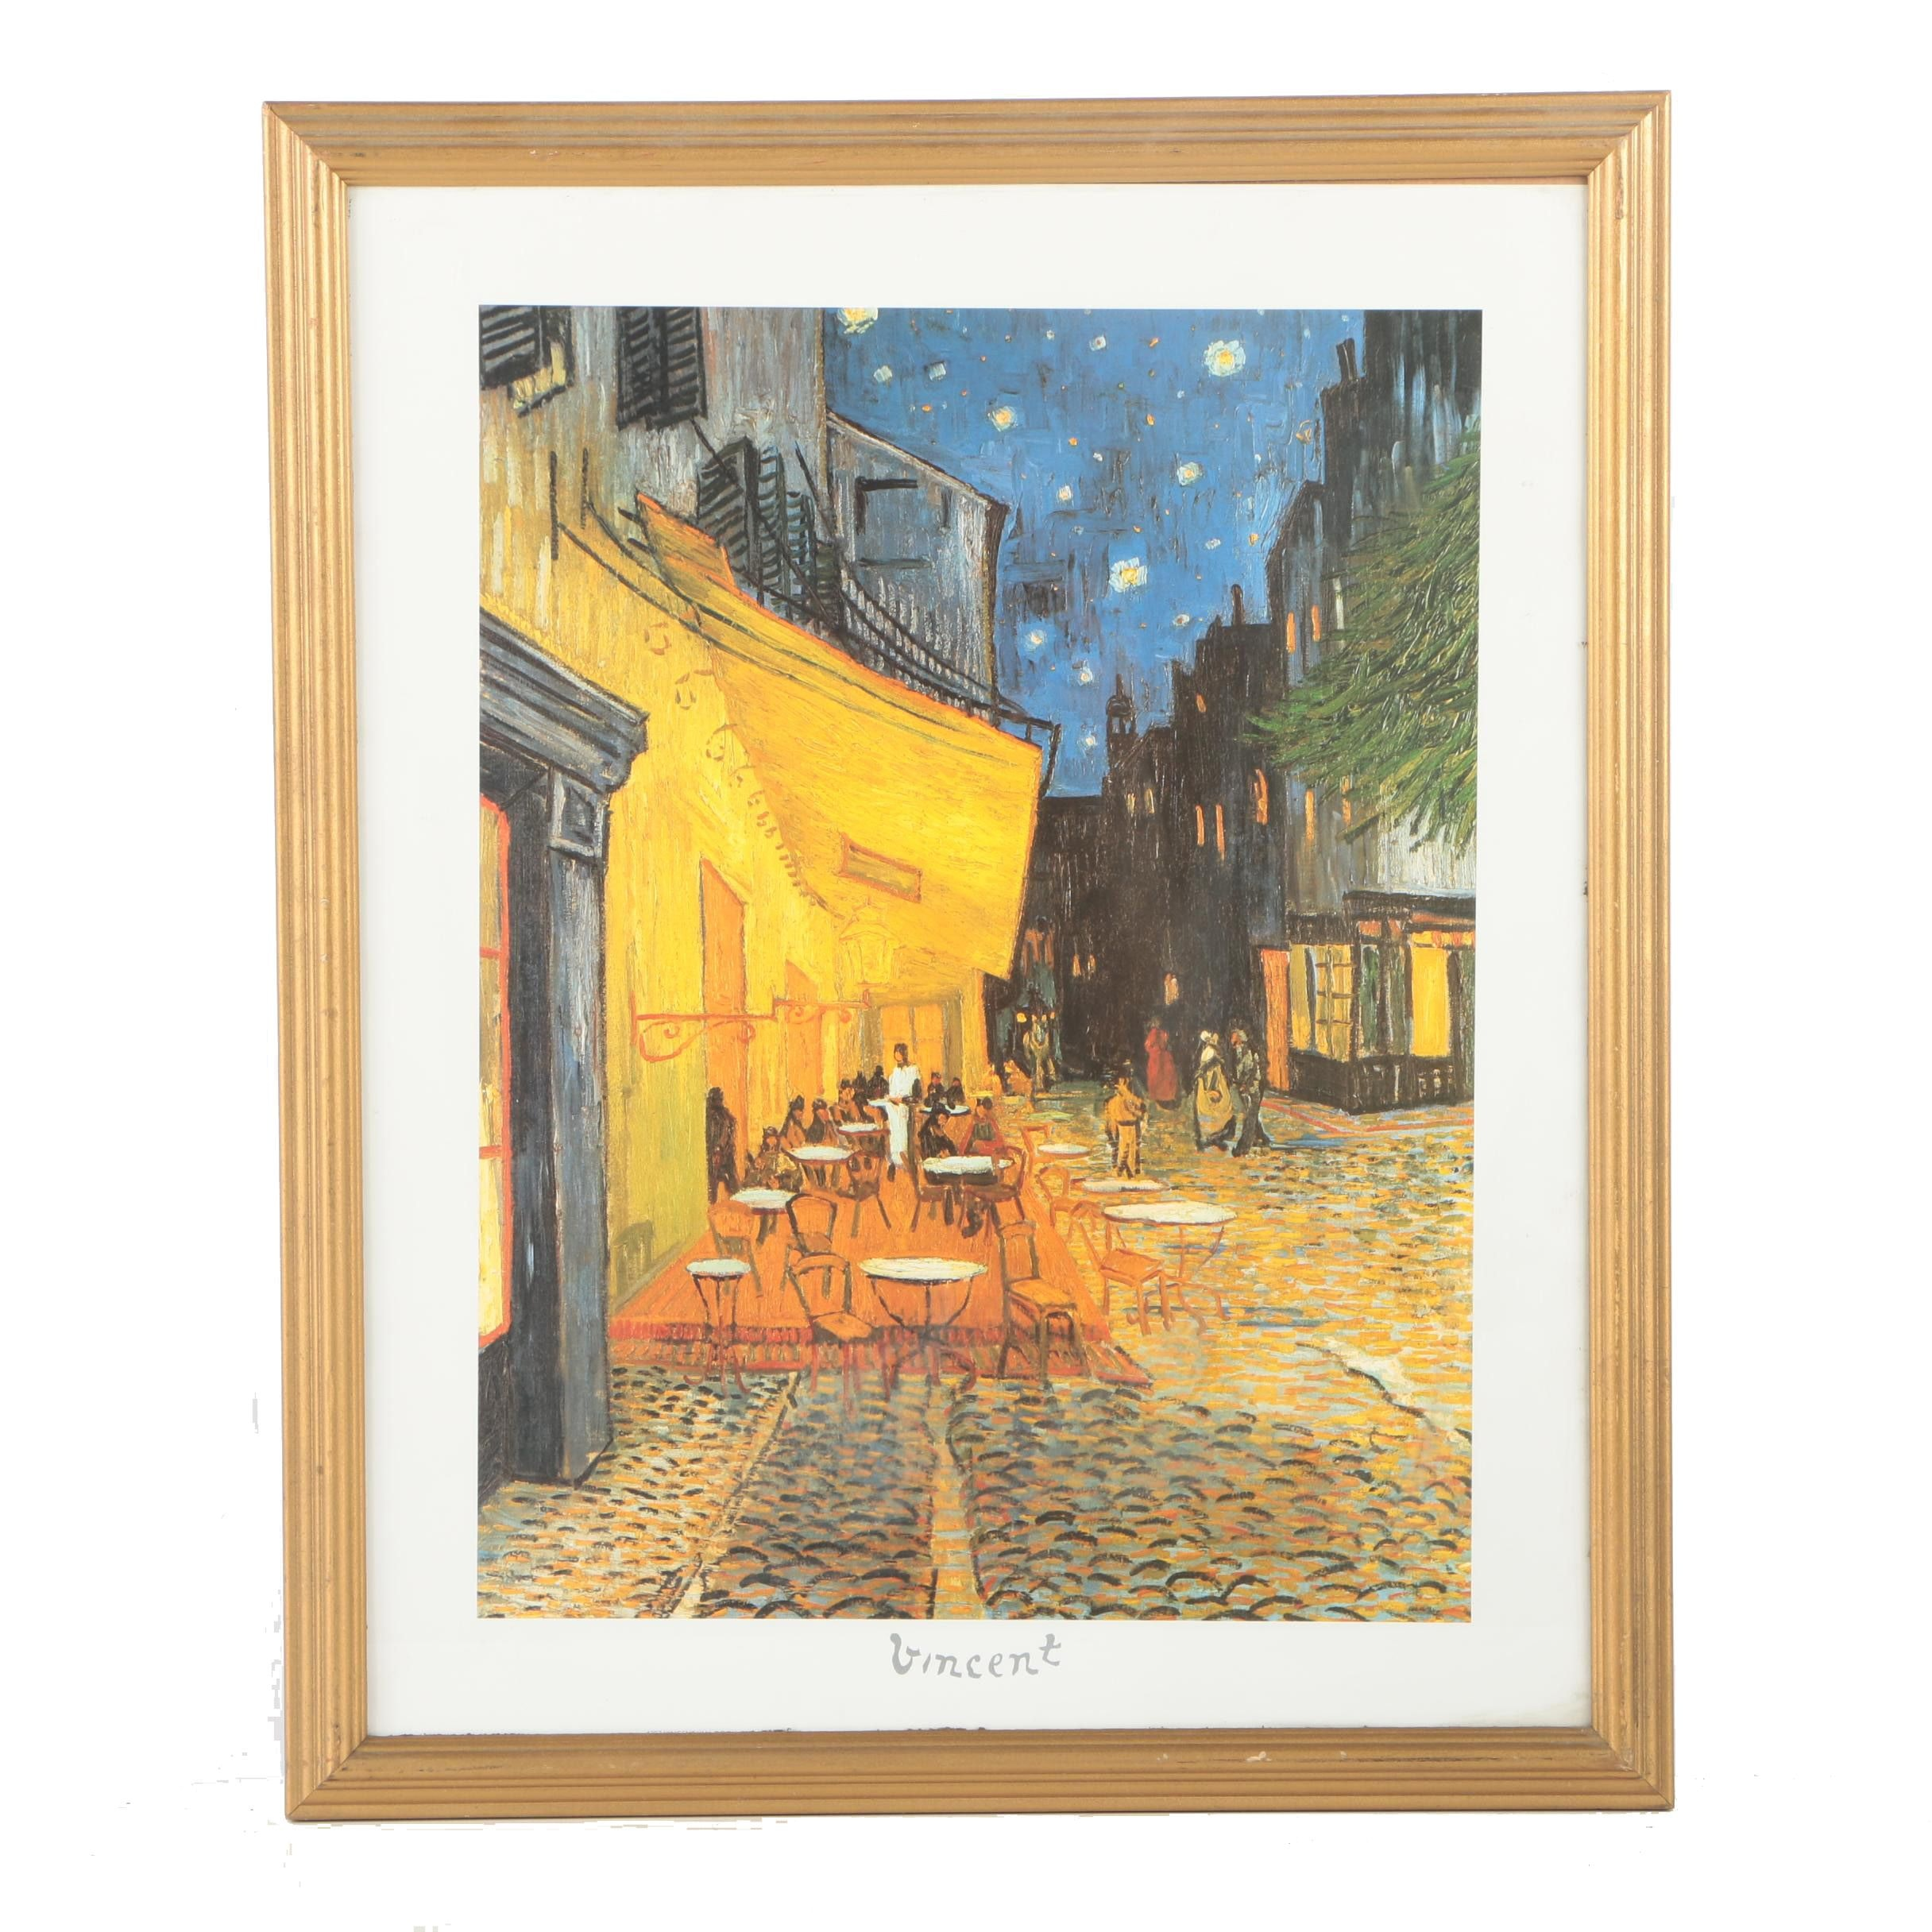 "Offset Lithograph on Paper After Vincent van Gogh's ""Café Terrace at Night"""